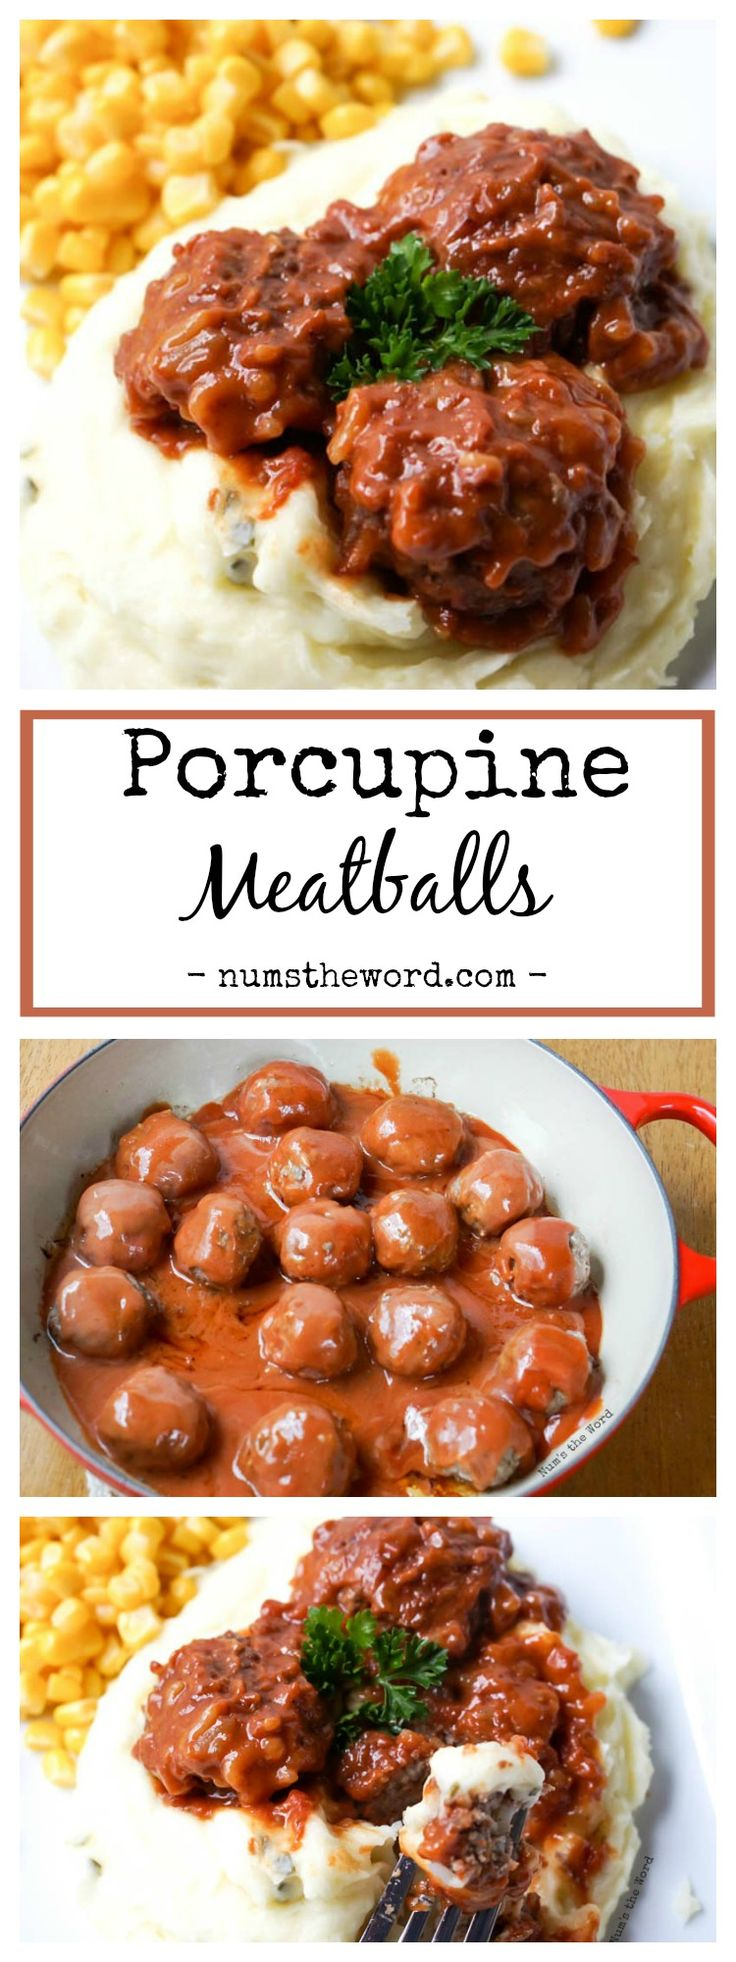 Porcupine Meatballs are rice filled meatballs cooked in a tomato based sauce. Simple, hearty and delicious! A perfect meal for family and friends!